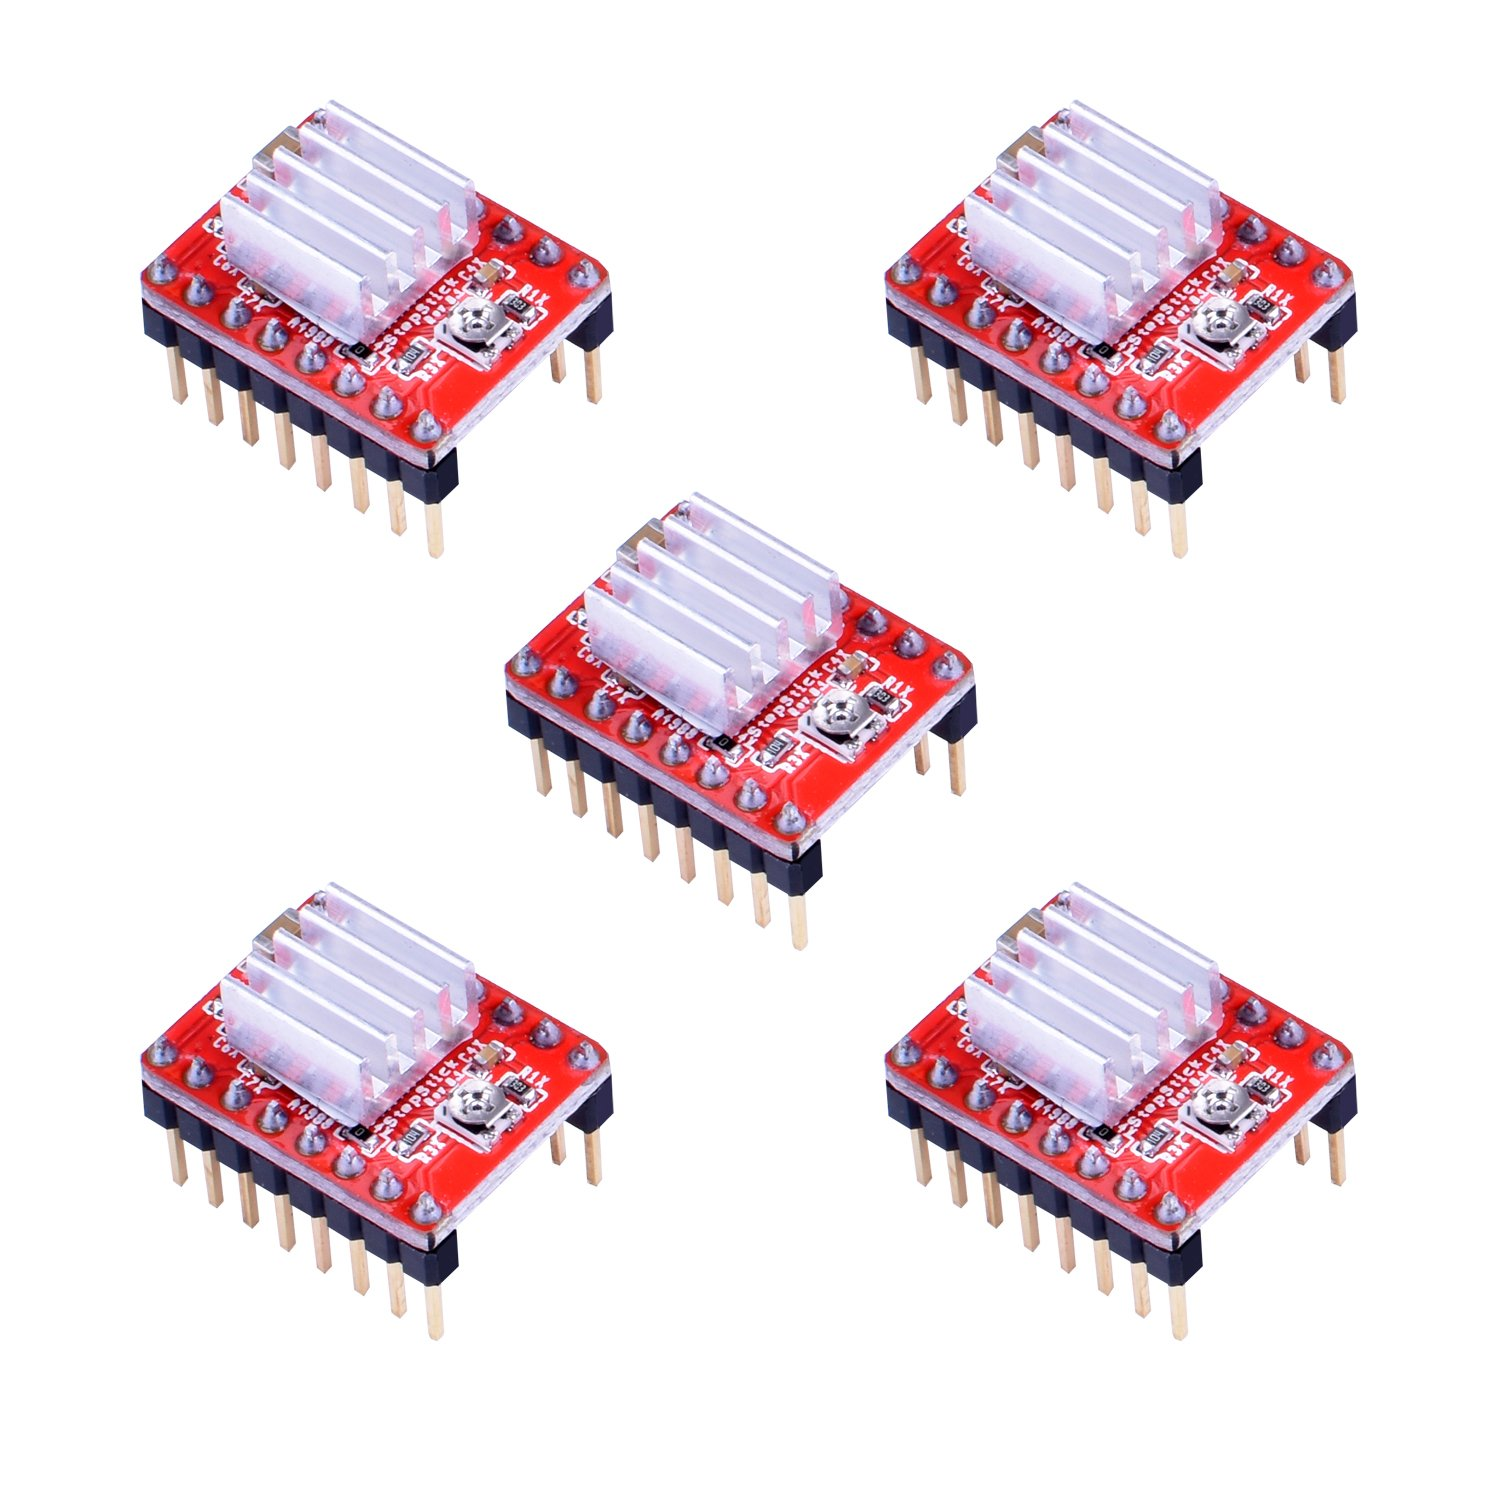 3d Printer Controller Kit For Arduino Mega 2560 Uno R3 The Stepperdriver Interface Uses Power Mosfets Starter Kits Ramps 14 With Upgraded Mosfet 5pcs A4988 Stepper Motor Driver Lcd